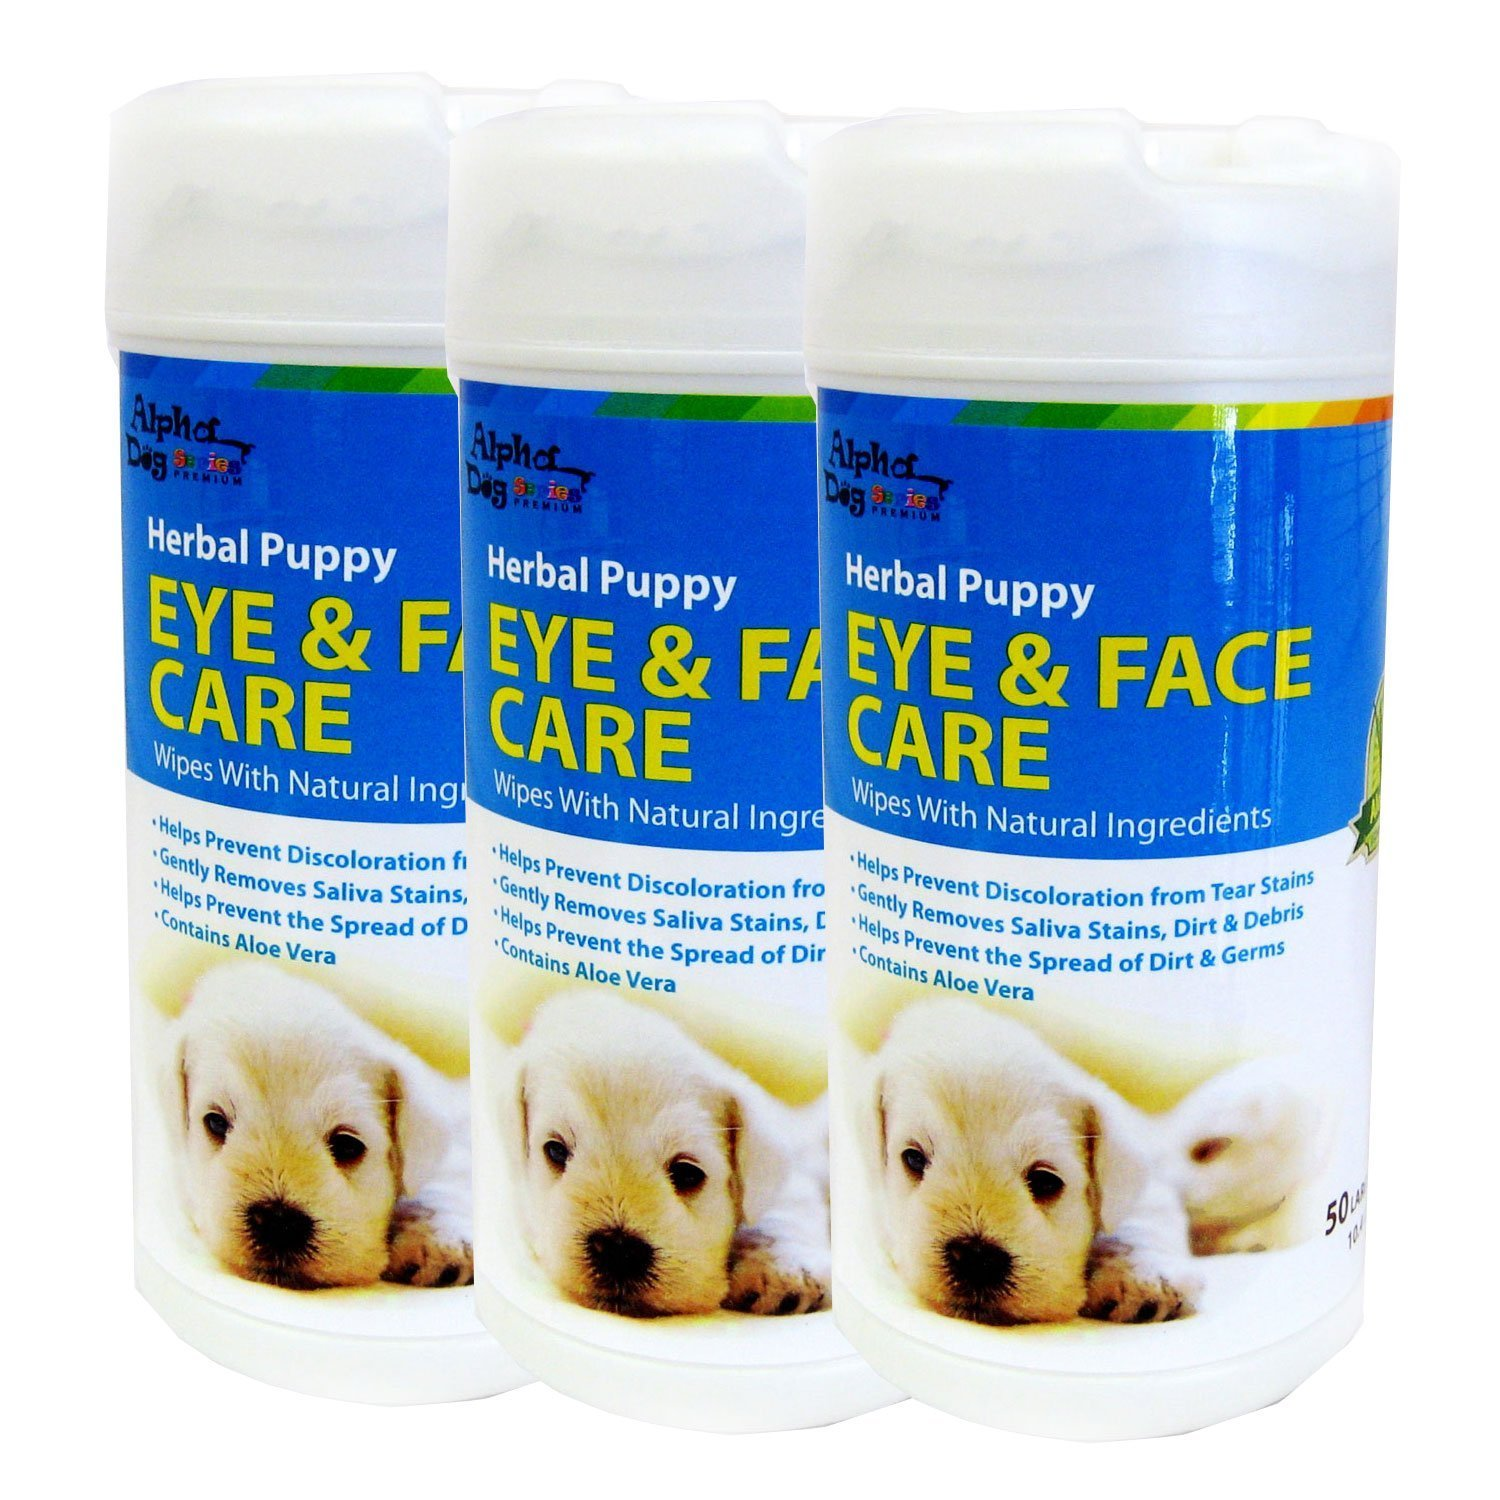 Alpha Dog Series Eye & Face Wipes (Pack of 3)